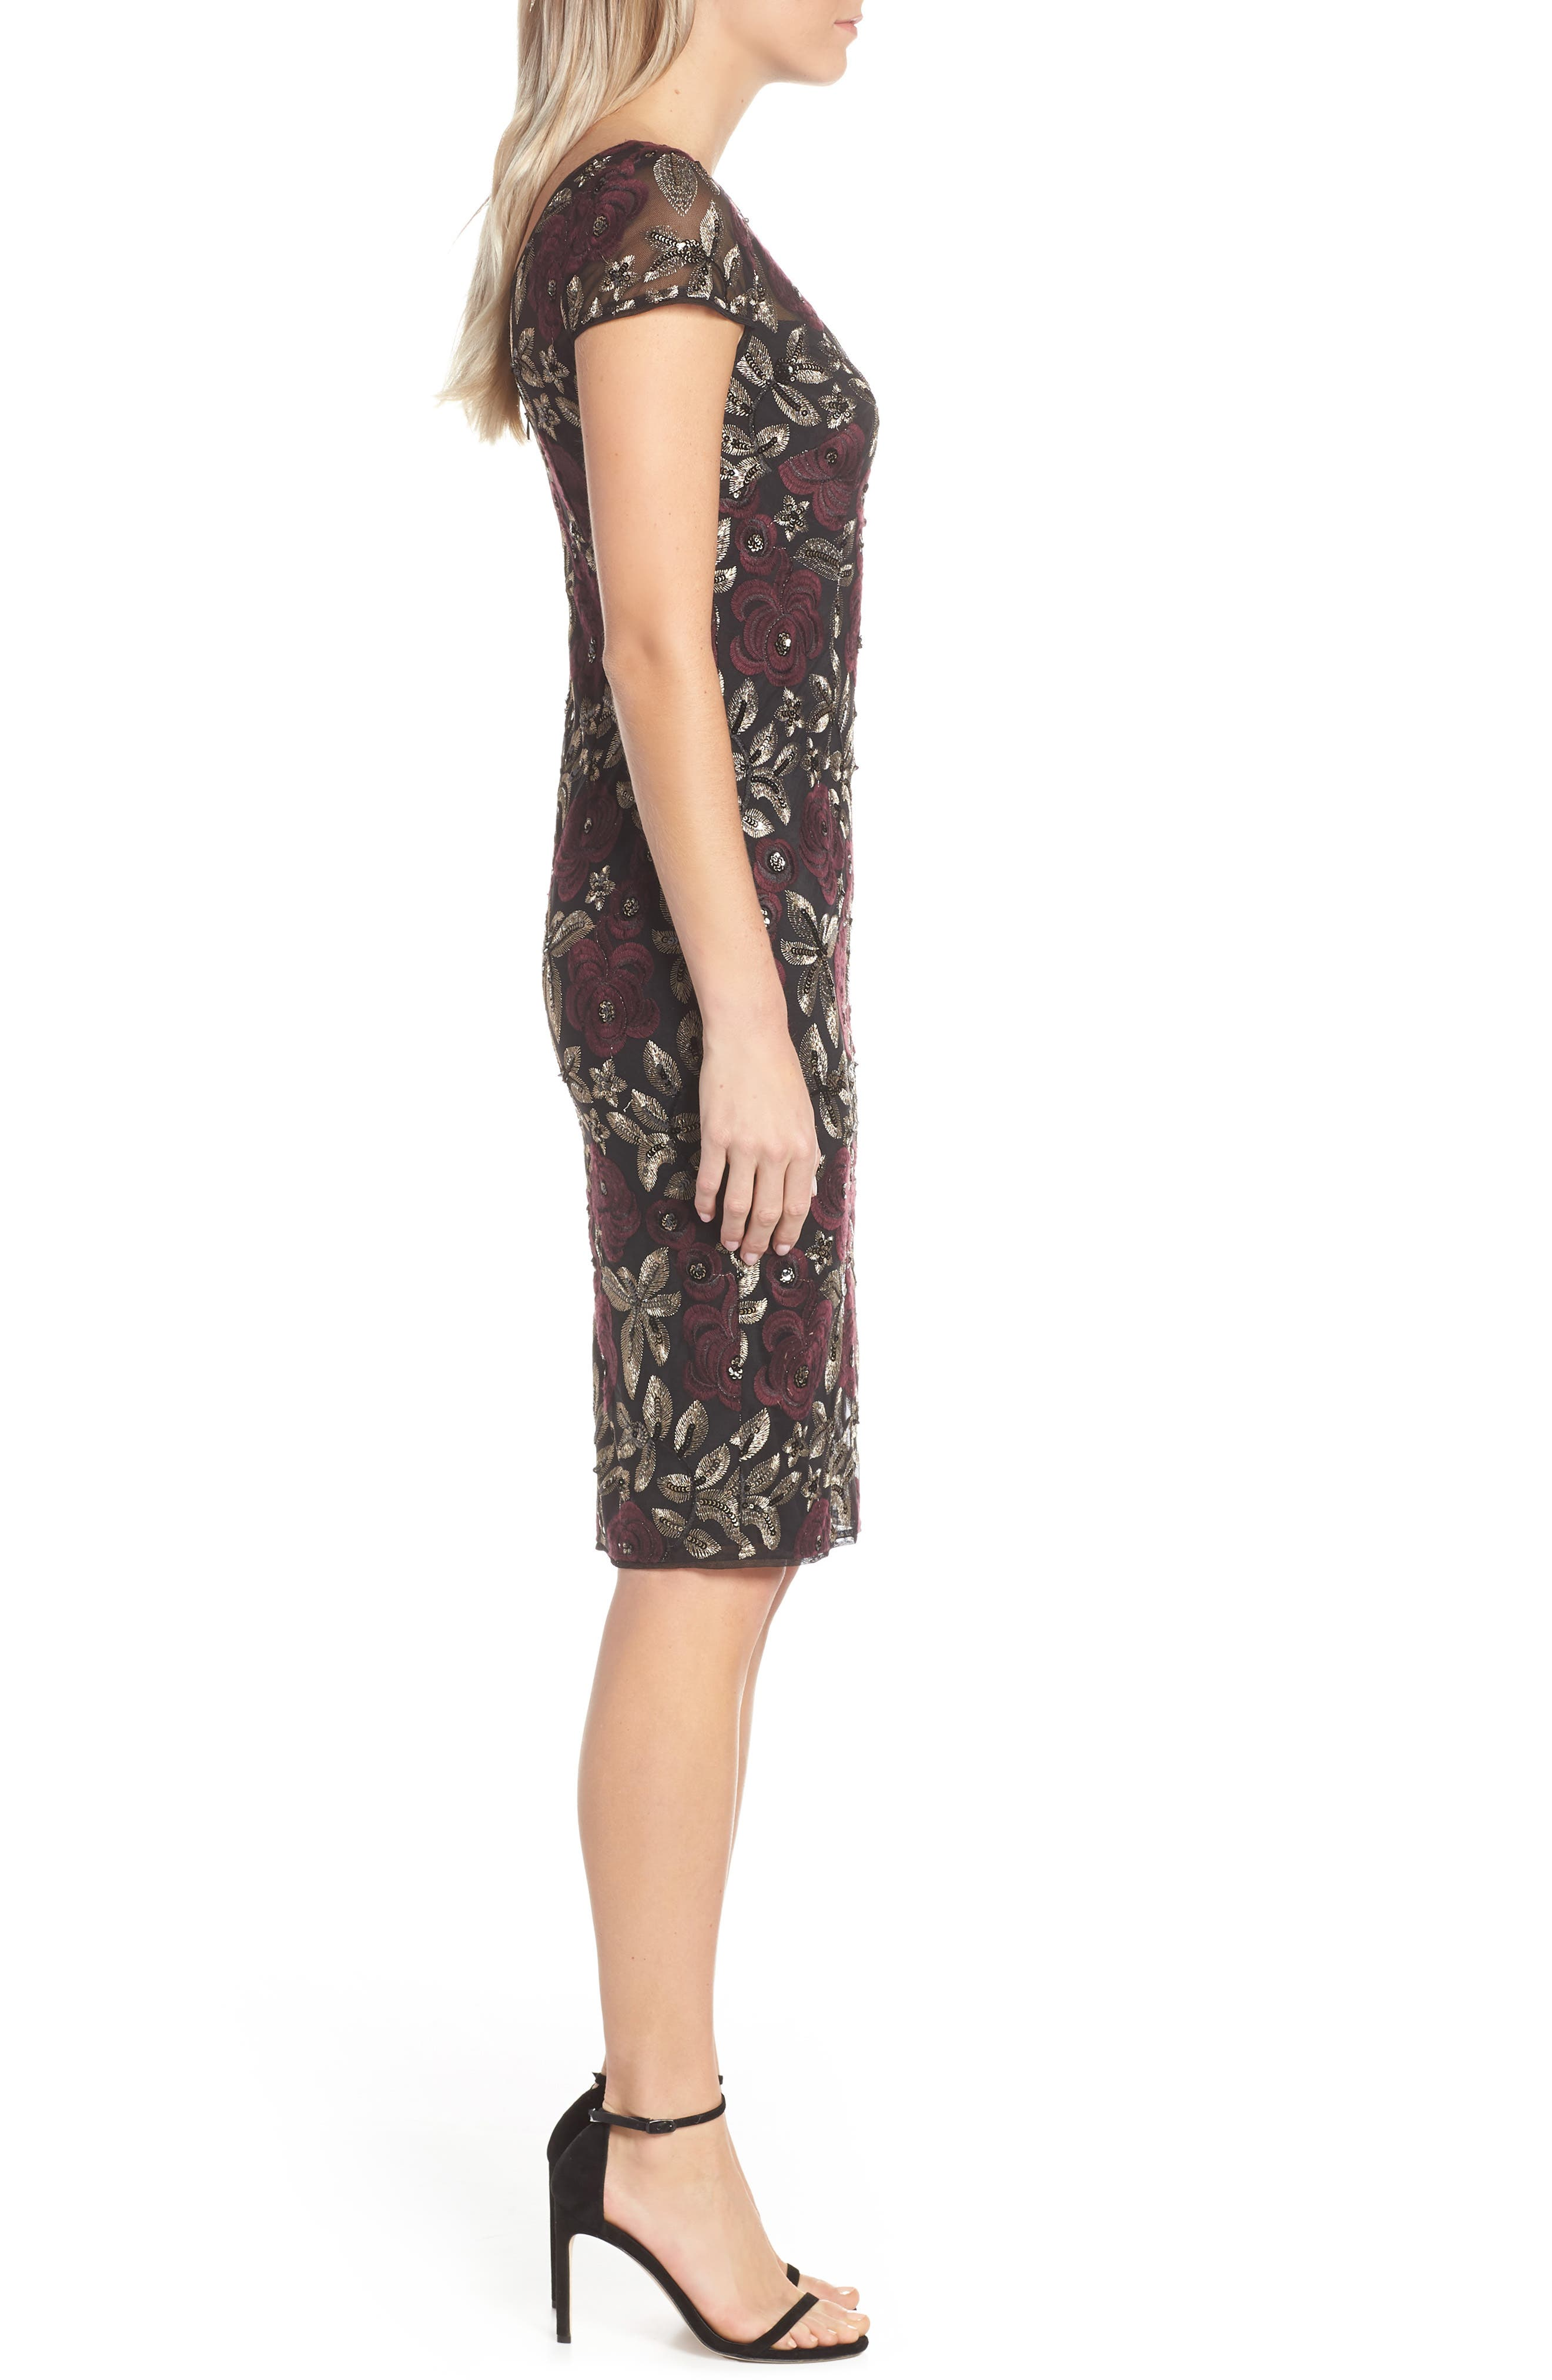 ADRIANNA PAPELL, Sequin Embroidered Cocktail Dress, Alternate thumbnail 4, color, 930